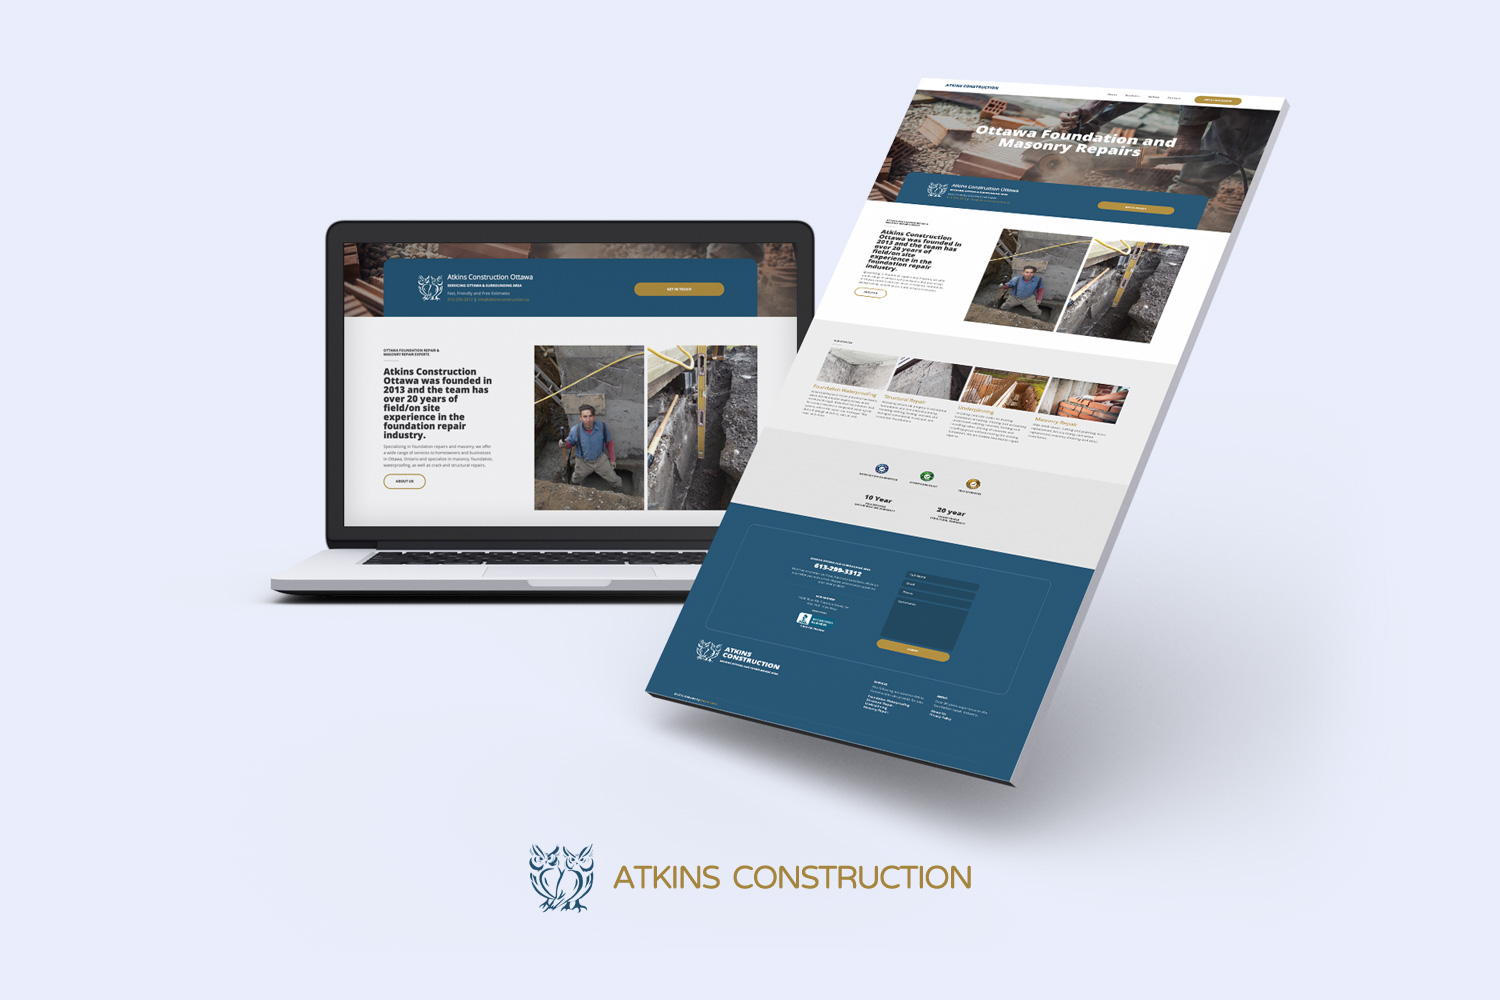 Get a better construction or trade related website design